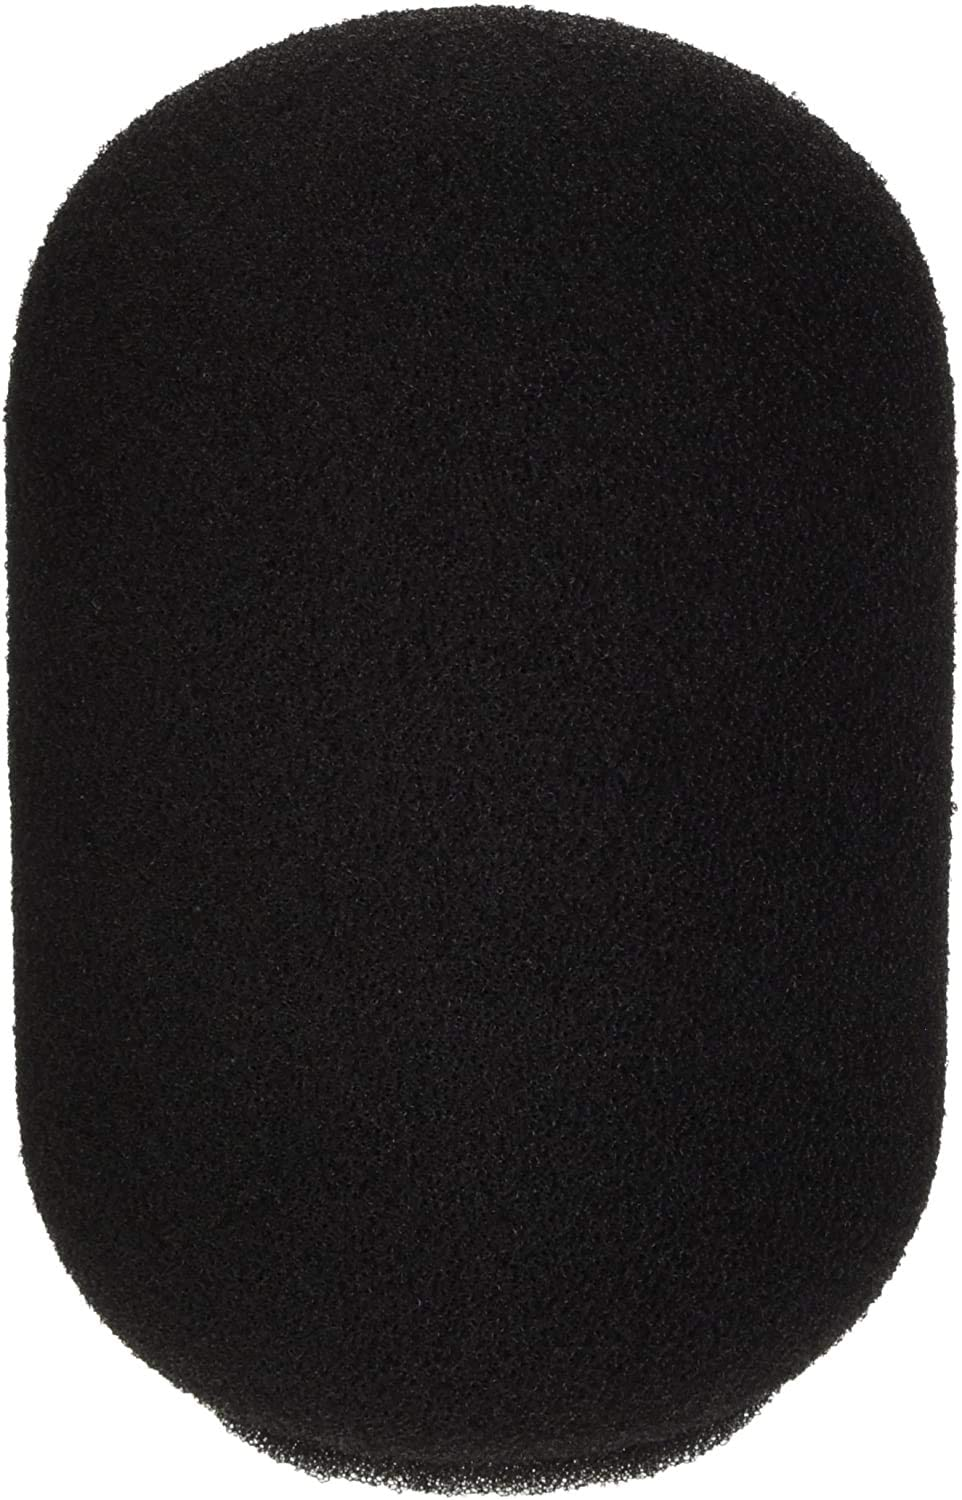 Max 84% OFF Shure A7WS Gray Large Close-Talk Windscreen Models for Choice SM7